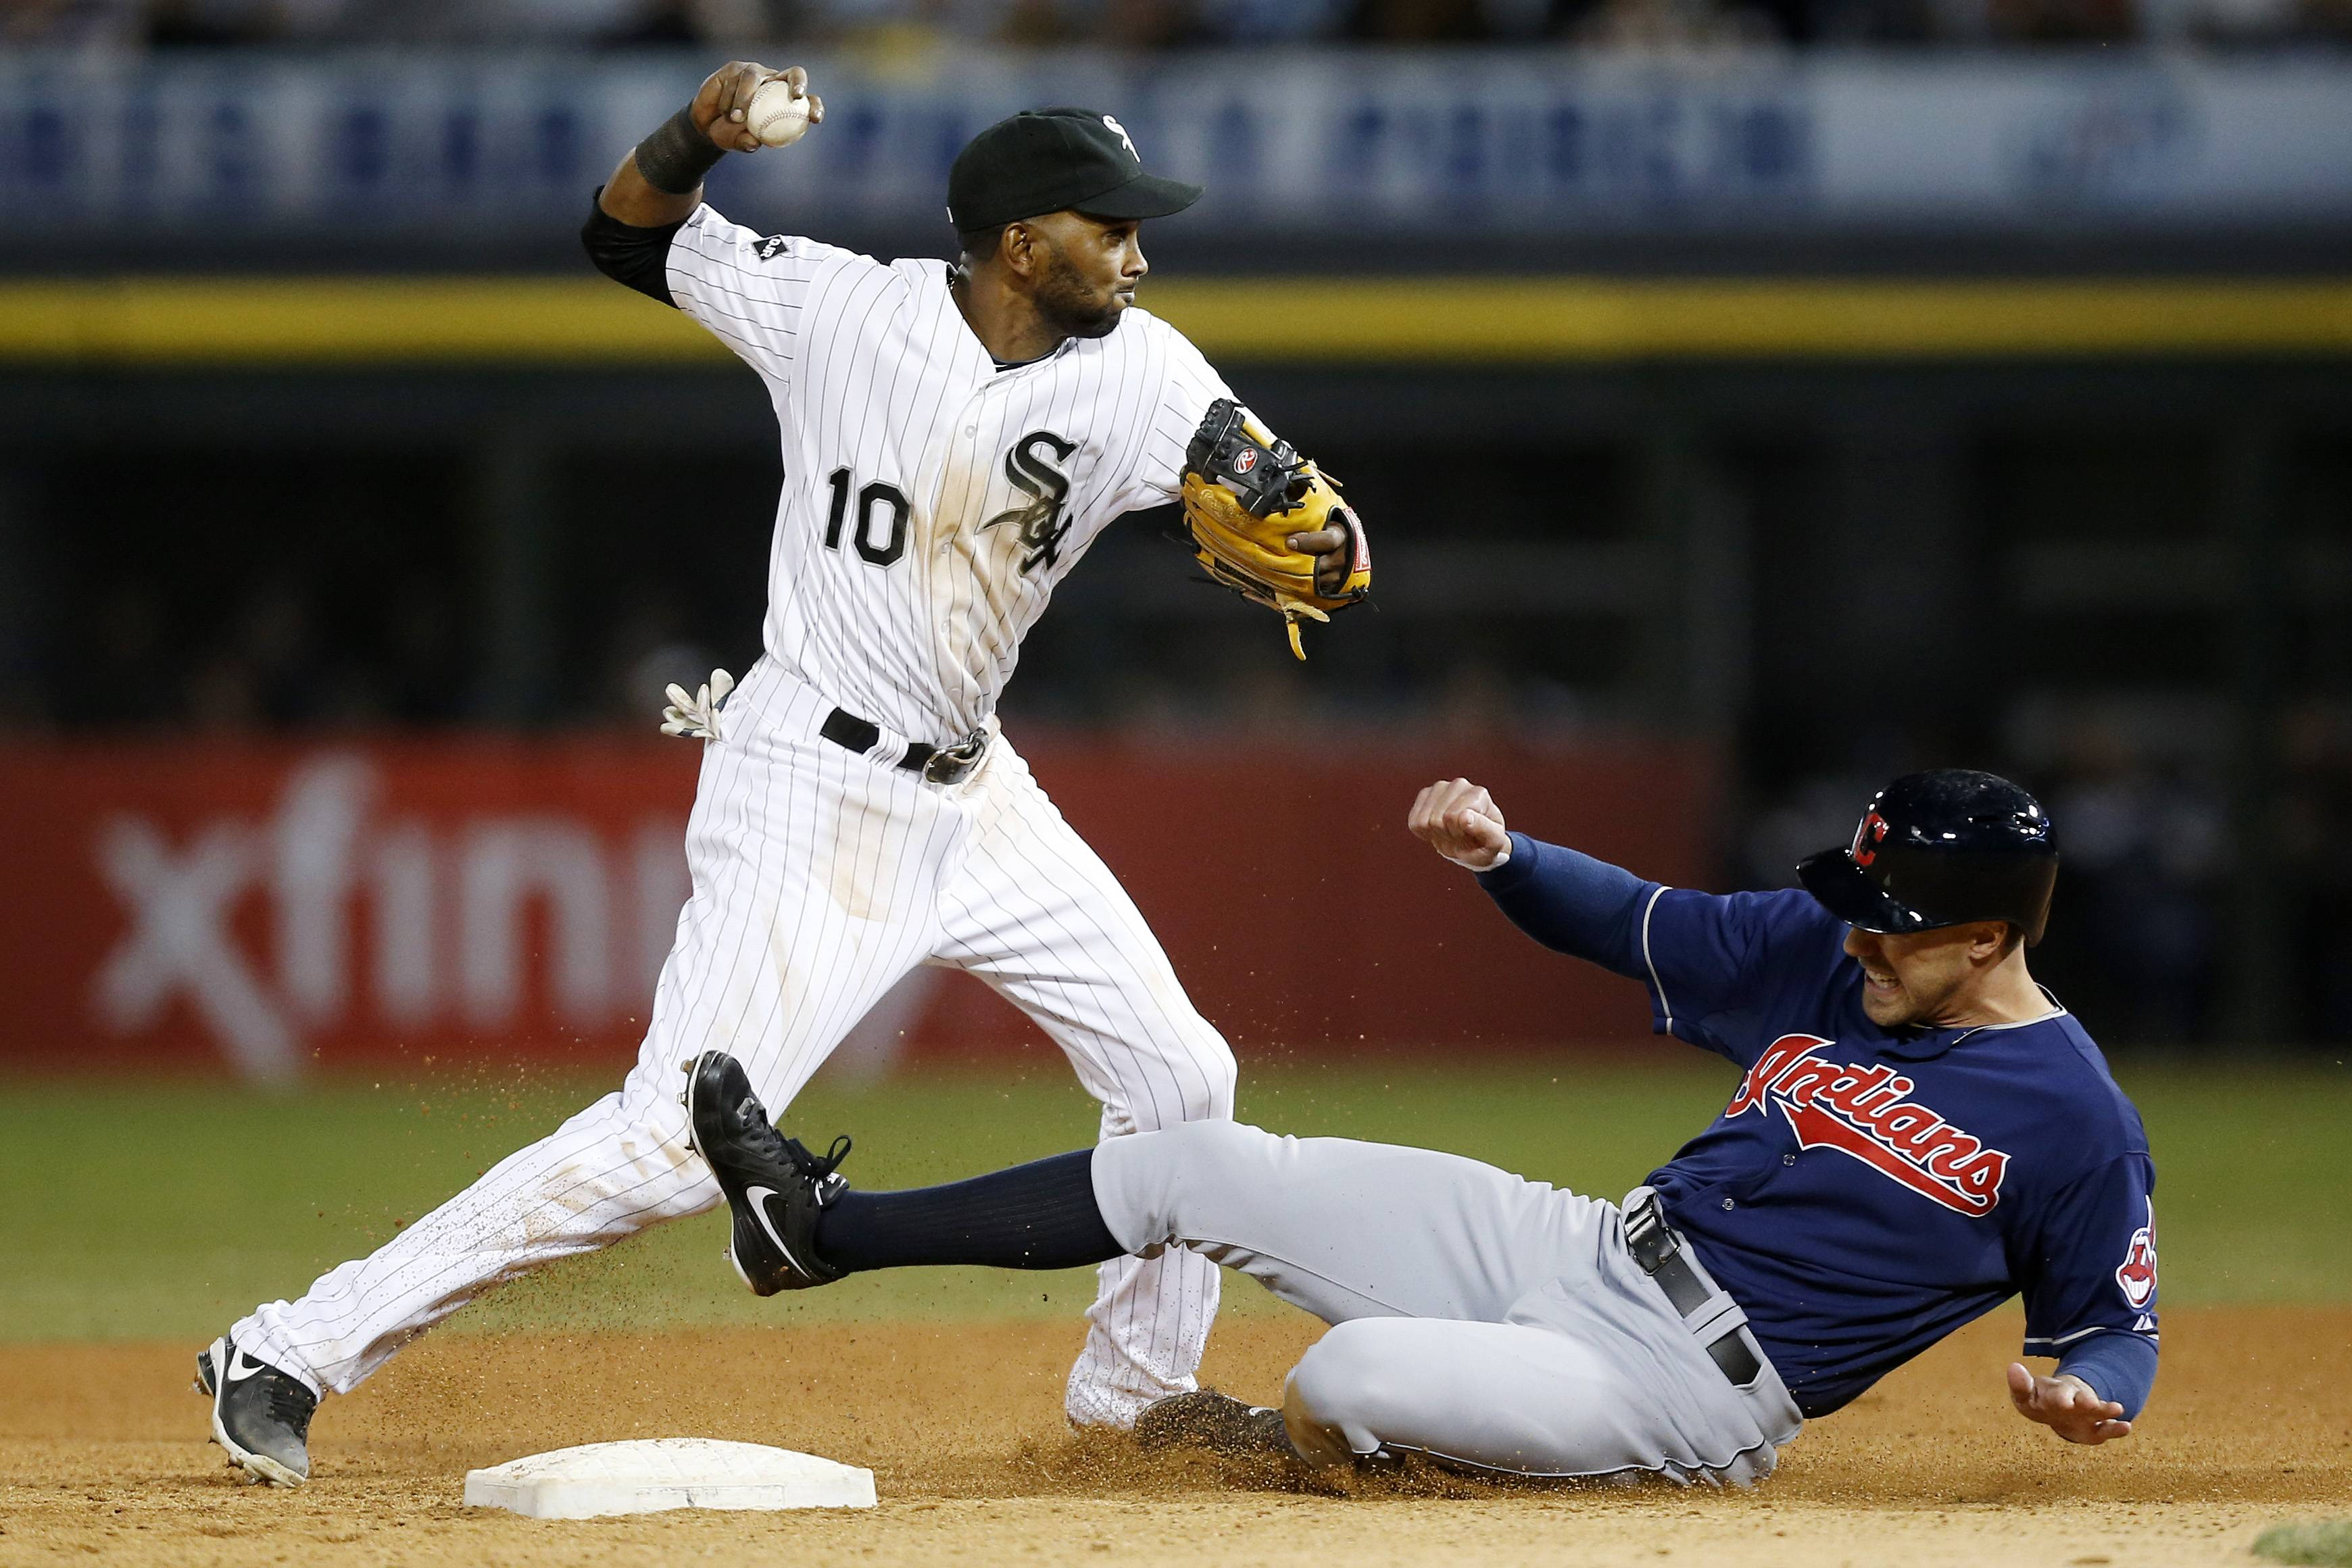 Chicago White Sox shortstop Alexei Ramirez forces out Cleveland Indians' David Murphy on a double play during the eighth inning of a baseball game on Friday, April 11, 2014, in Chicago. The White Sox won 9-6.